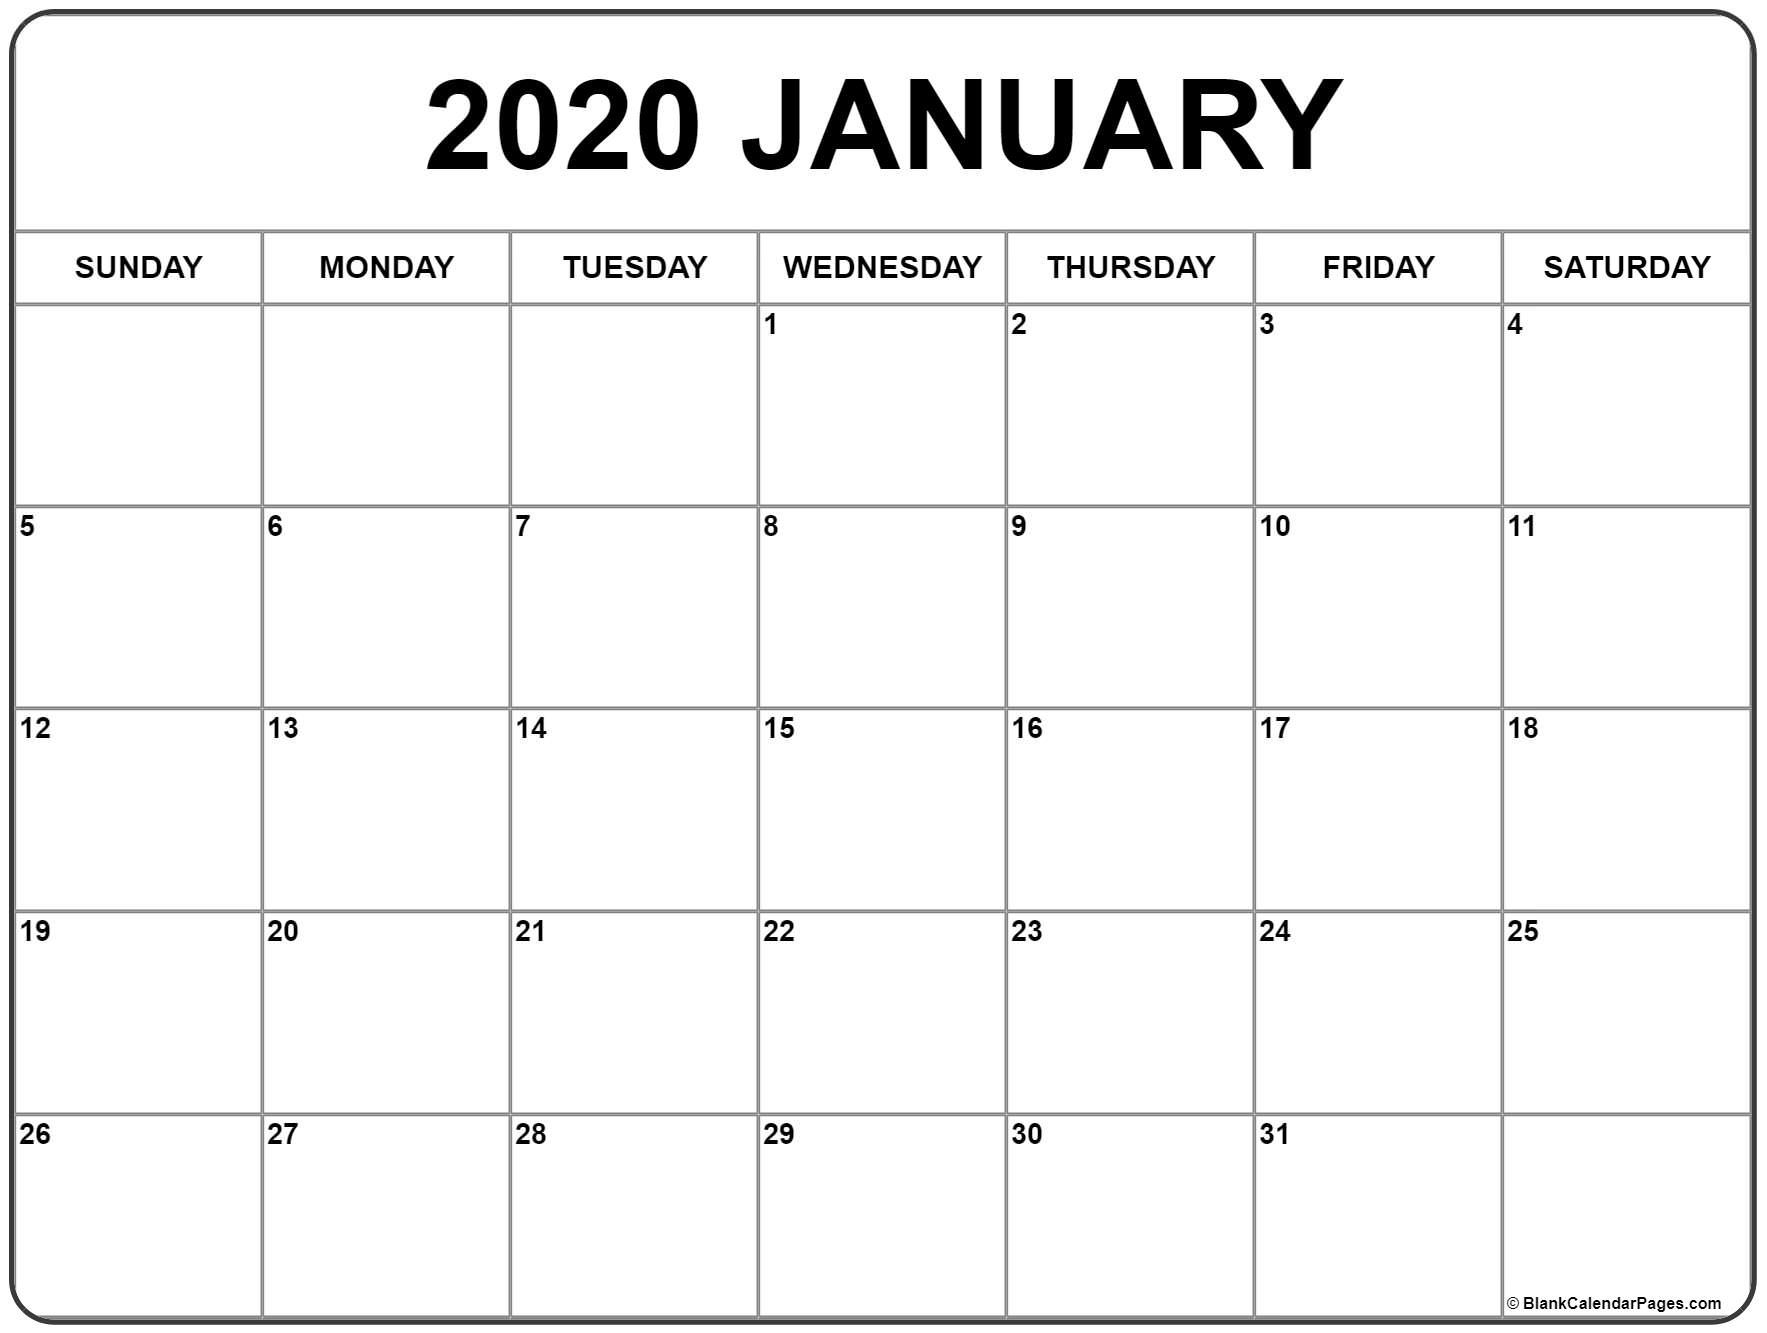 January 2020 Calendar | Free Printable Monthly Calendars with Google Free Printable Calendars 2020